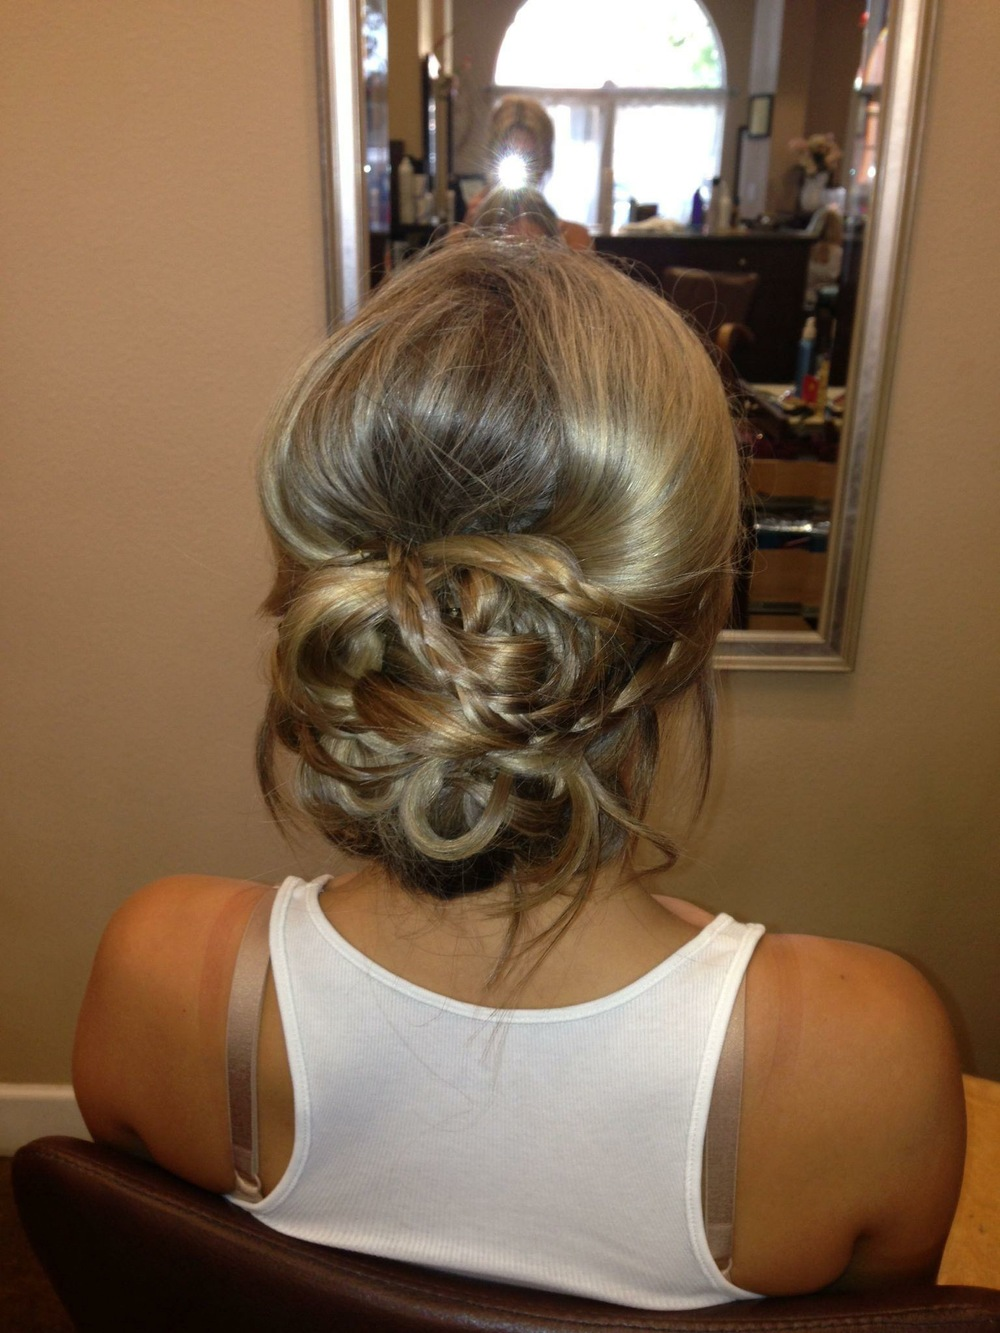 diva-salon-prom-dance-2500.jpg